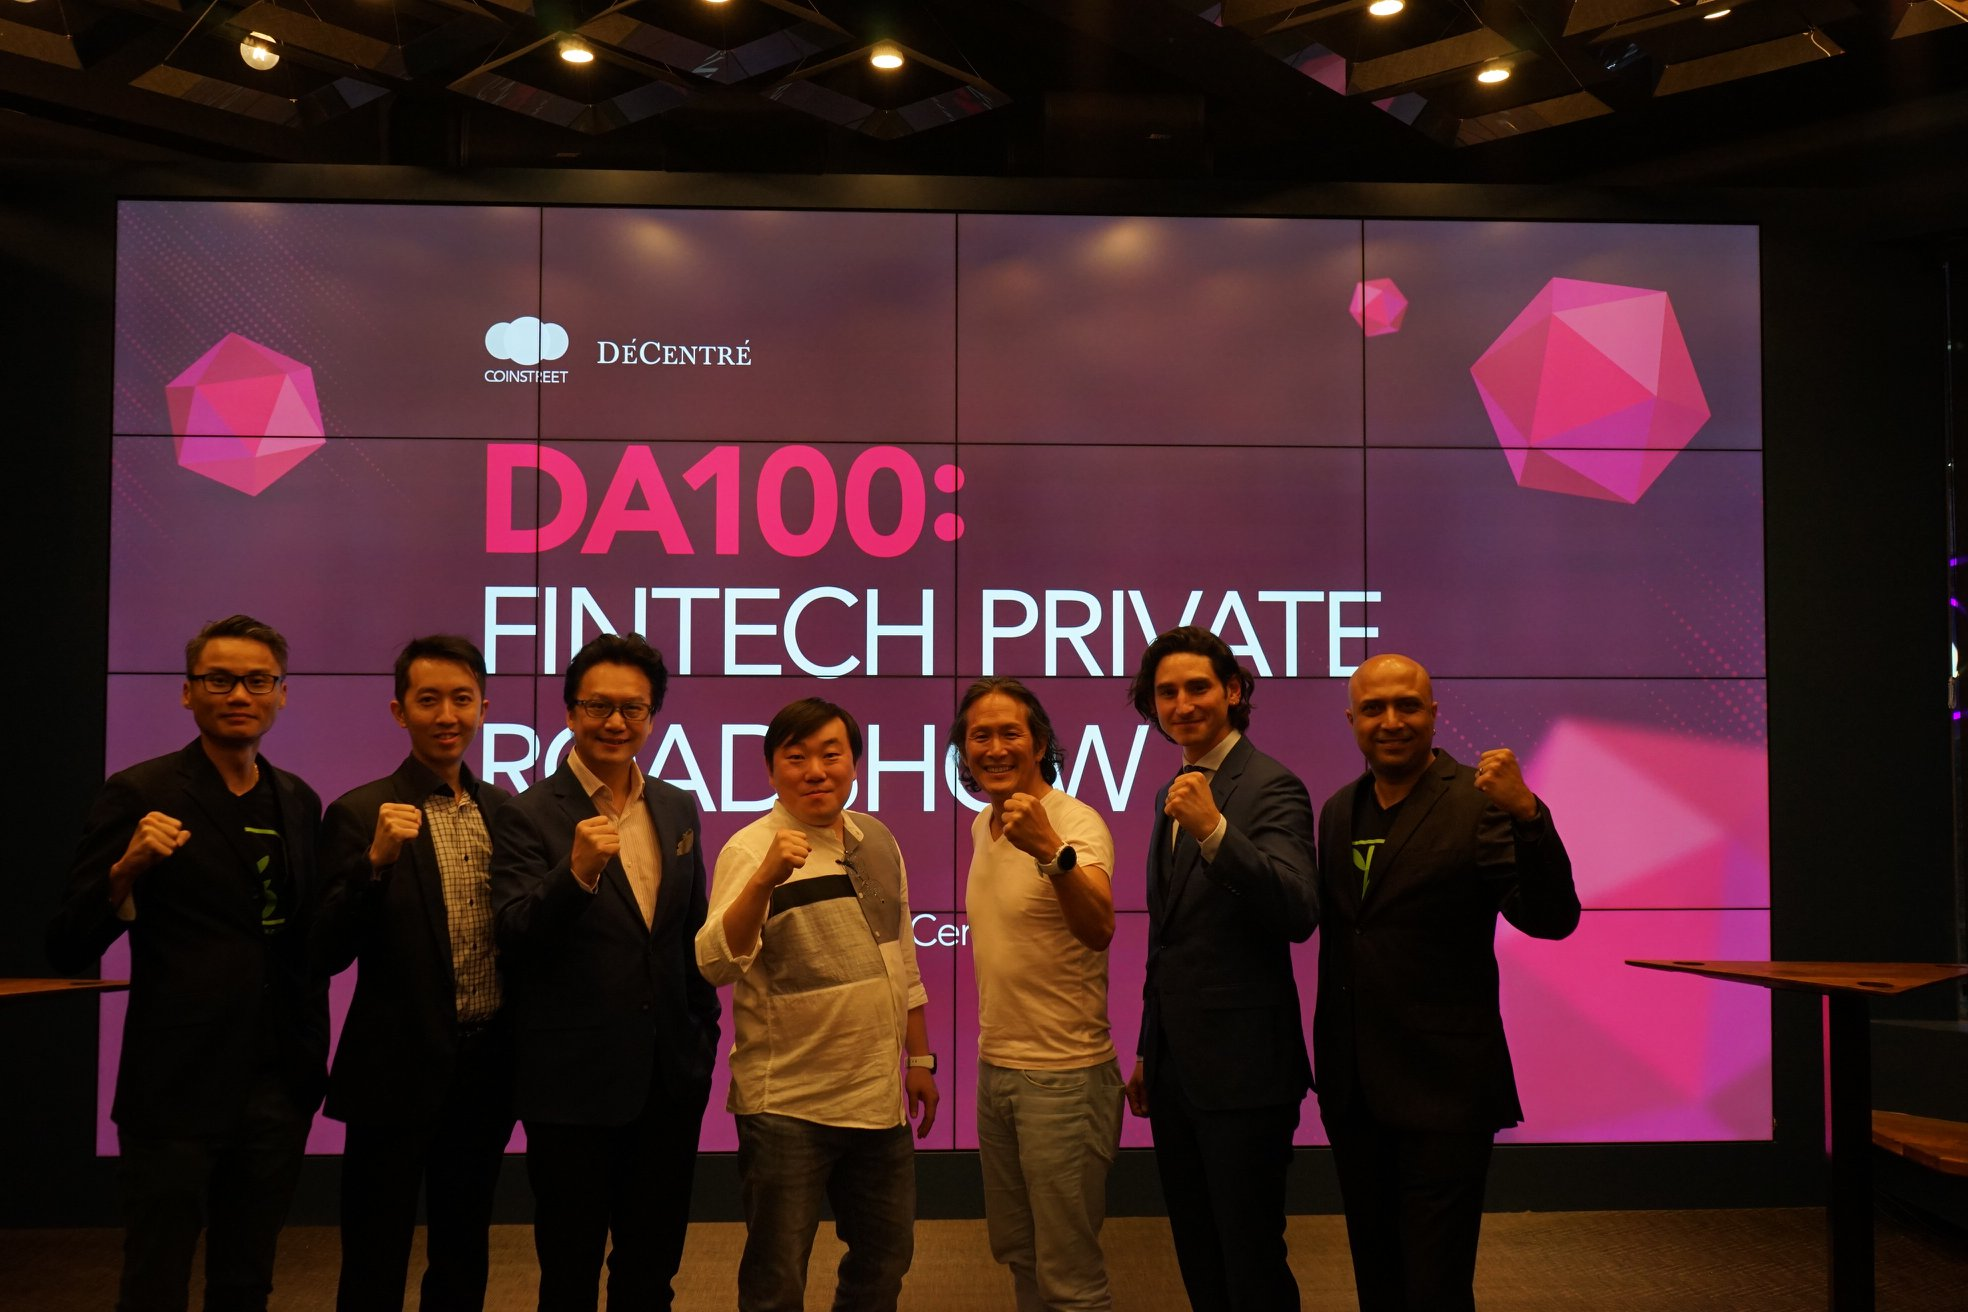 'DA100 FINTECH PRIVATE STO ROADSHOW'